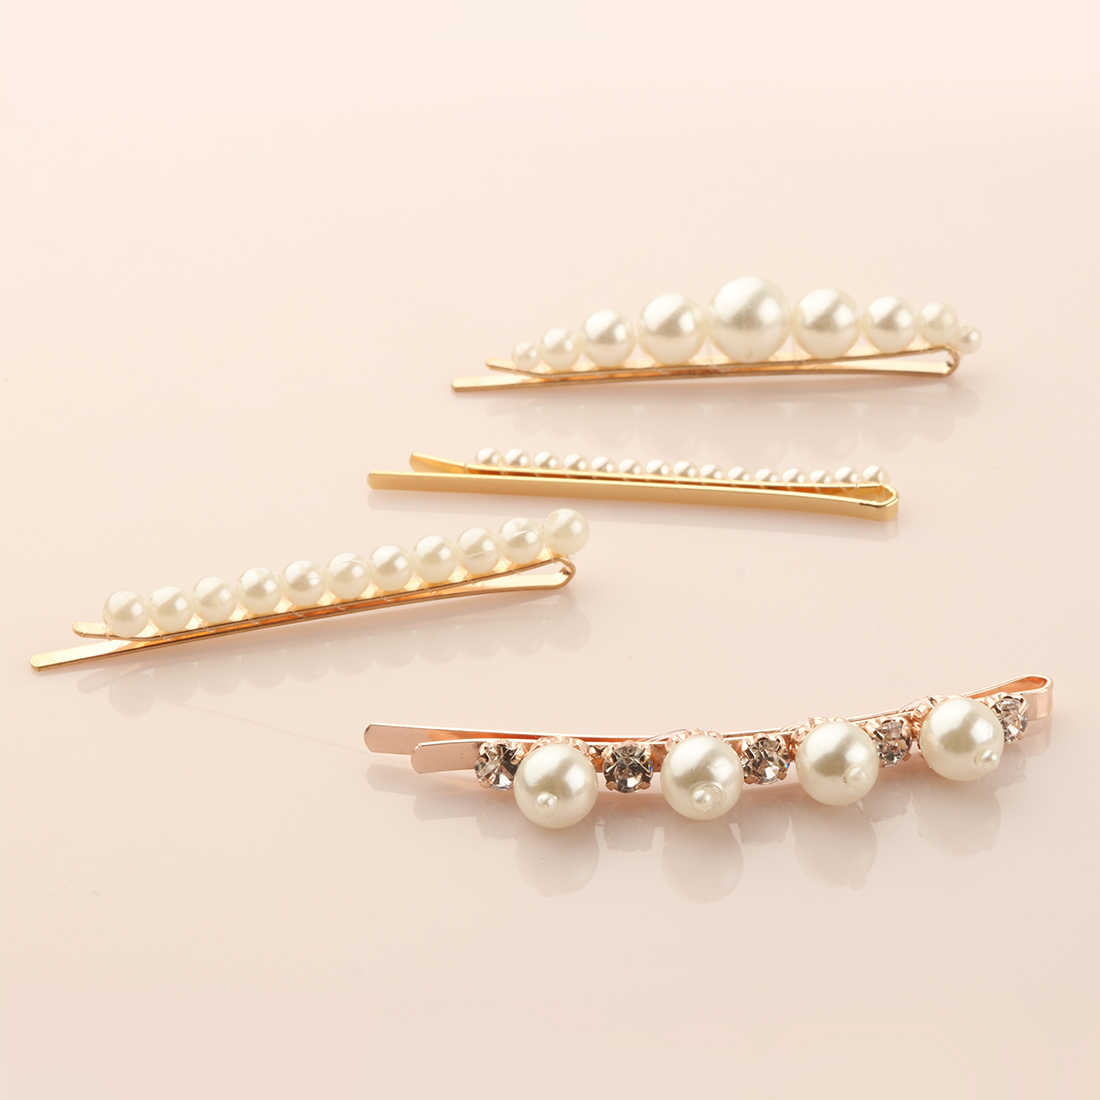 1 PC Women Fashion Pearl Hair Clips Elegant Girls Hair Accessories Mini Shiny Hairpins Princess Metal Alligator Clip Head Wear